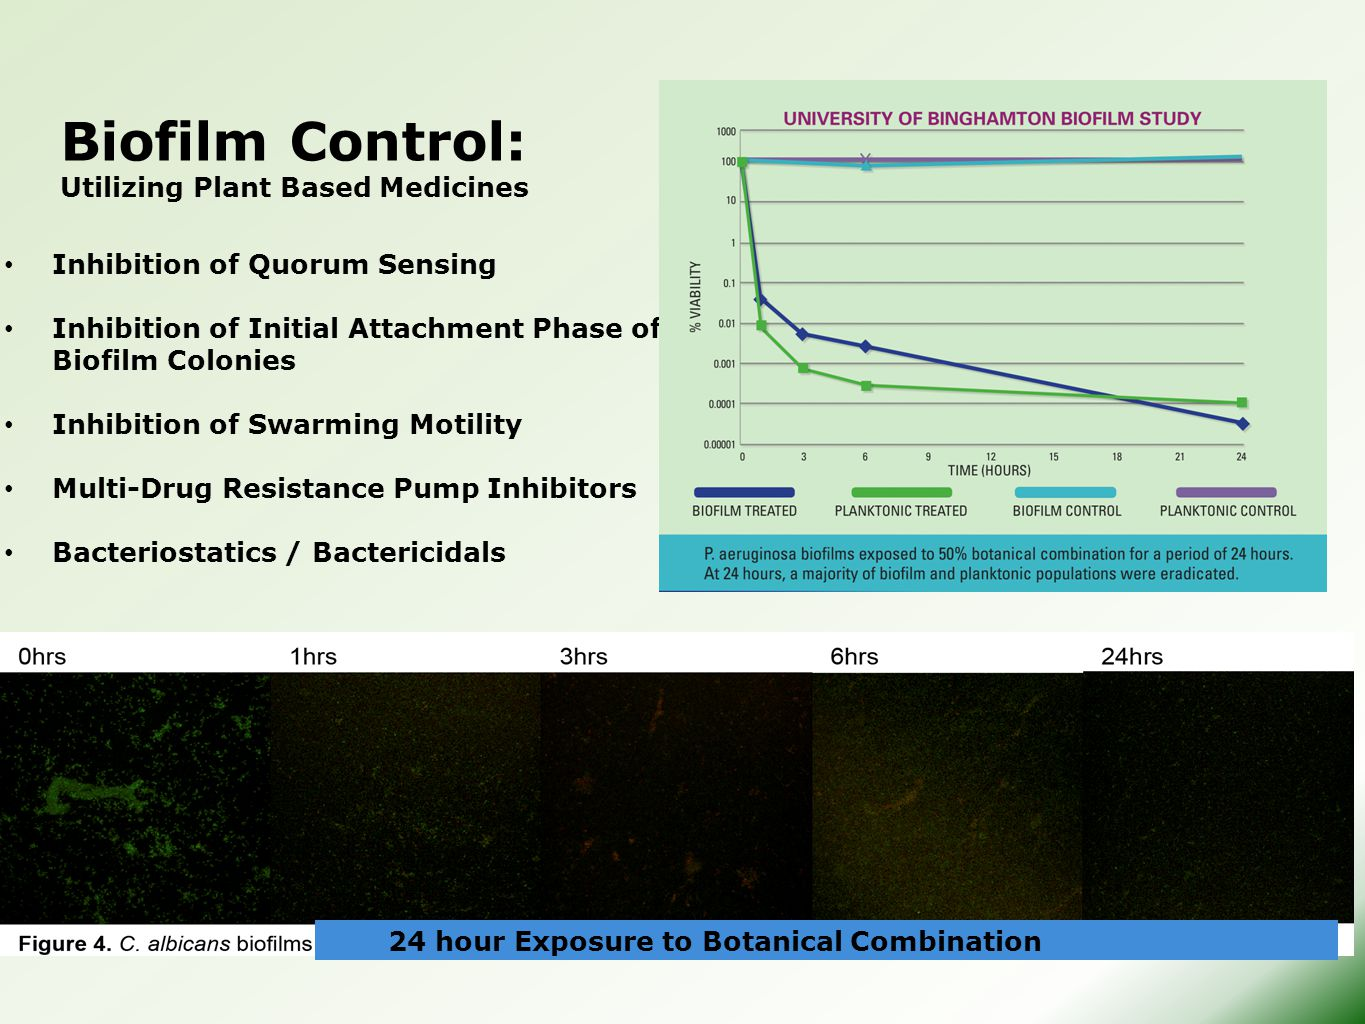 Biofilm Control: Utilizing Plant Based Medicines Inhibition of Quorum Sensing Inhibition of Initial Attachment Phase of Biofilm Colonies Inhibition of Swarming Motility Multi-Drug Resistance Pump Inhibitors Bacteriostatics / Bactericidals 24 hour Exposure to Botanical Combination